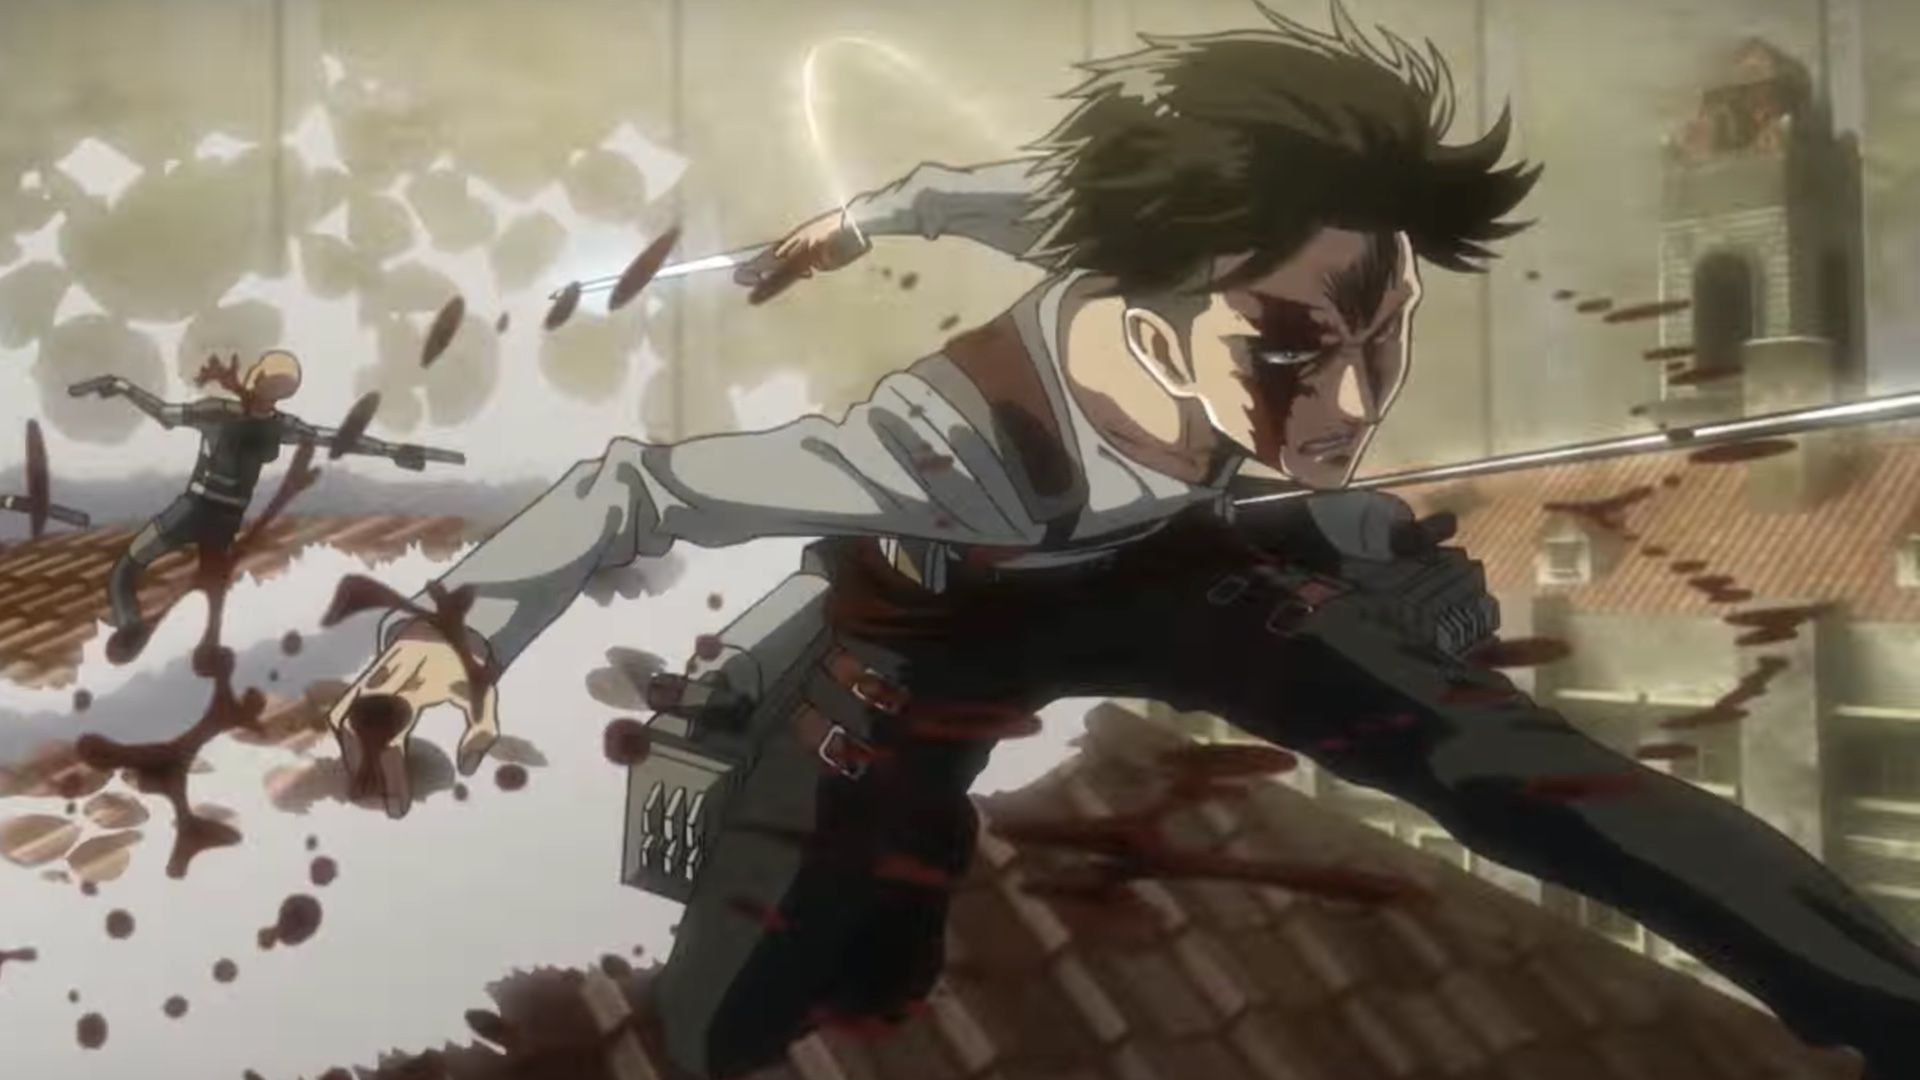 Attack on Titan Season 3 Part 2 Release Date CONFIRMED, New